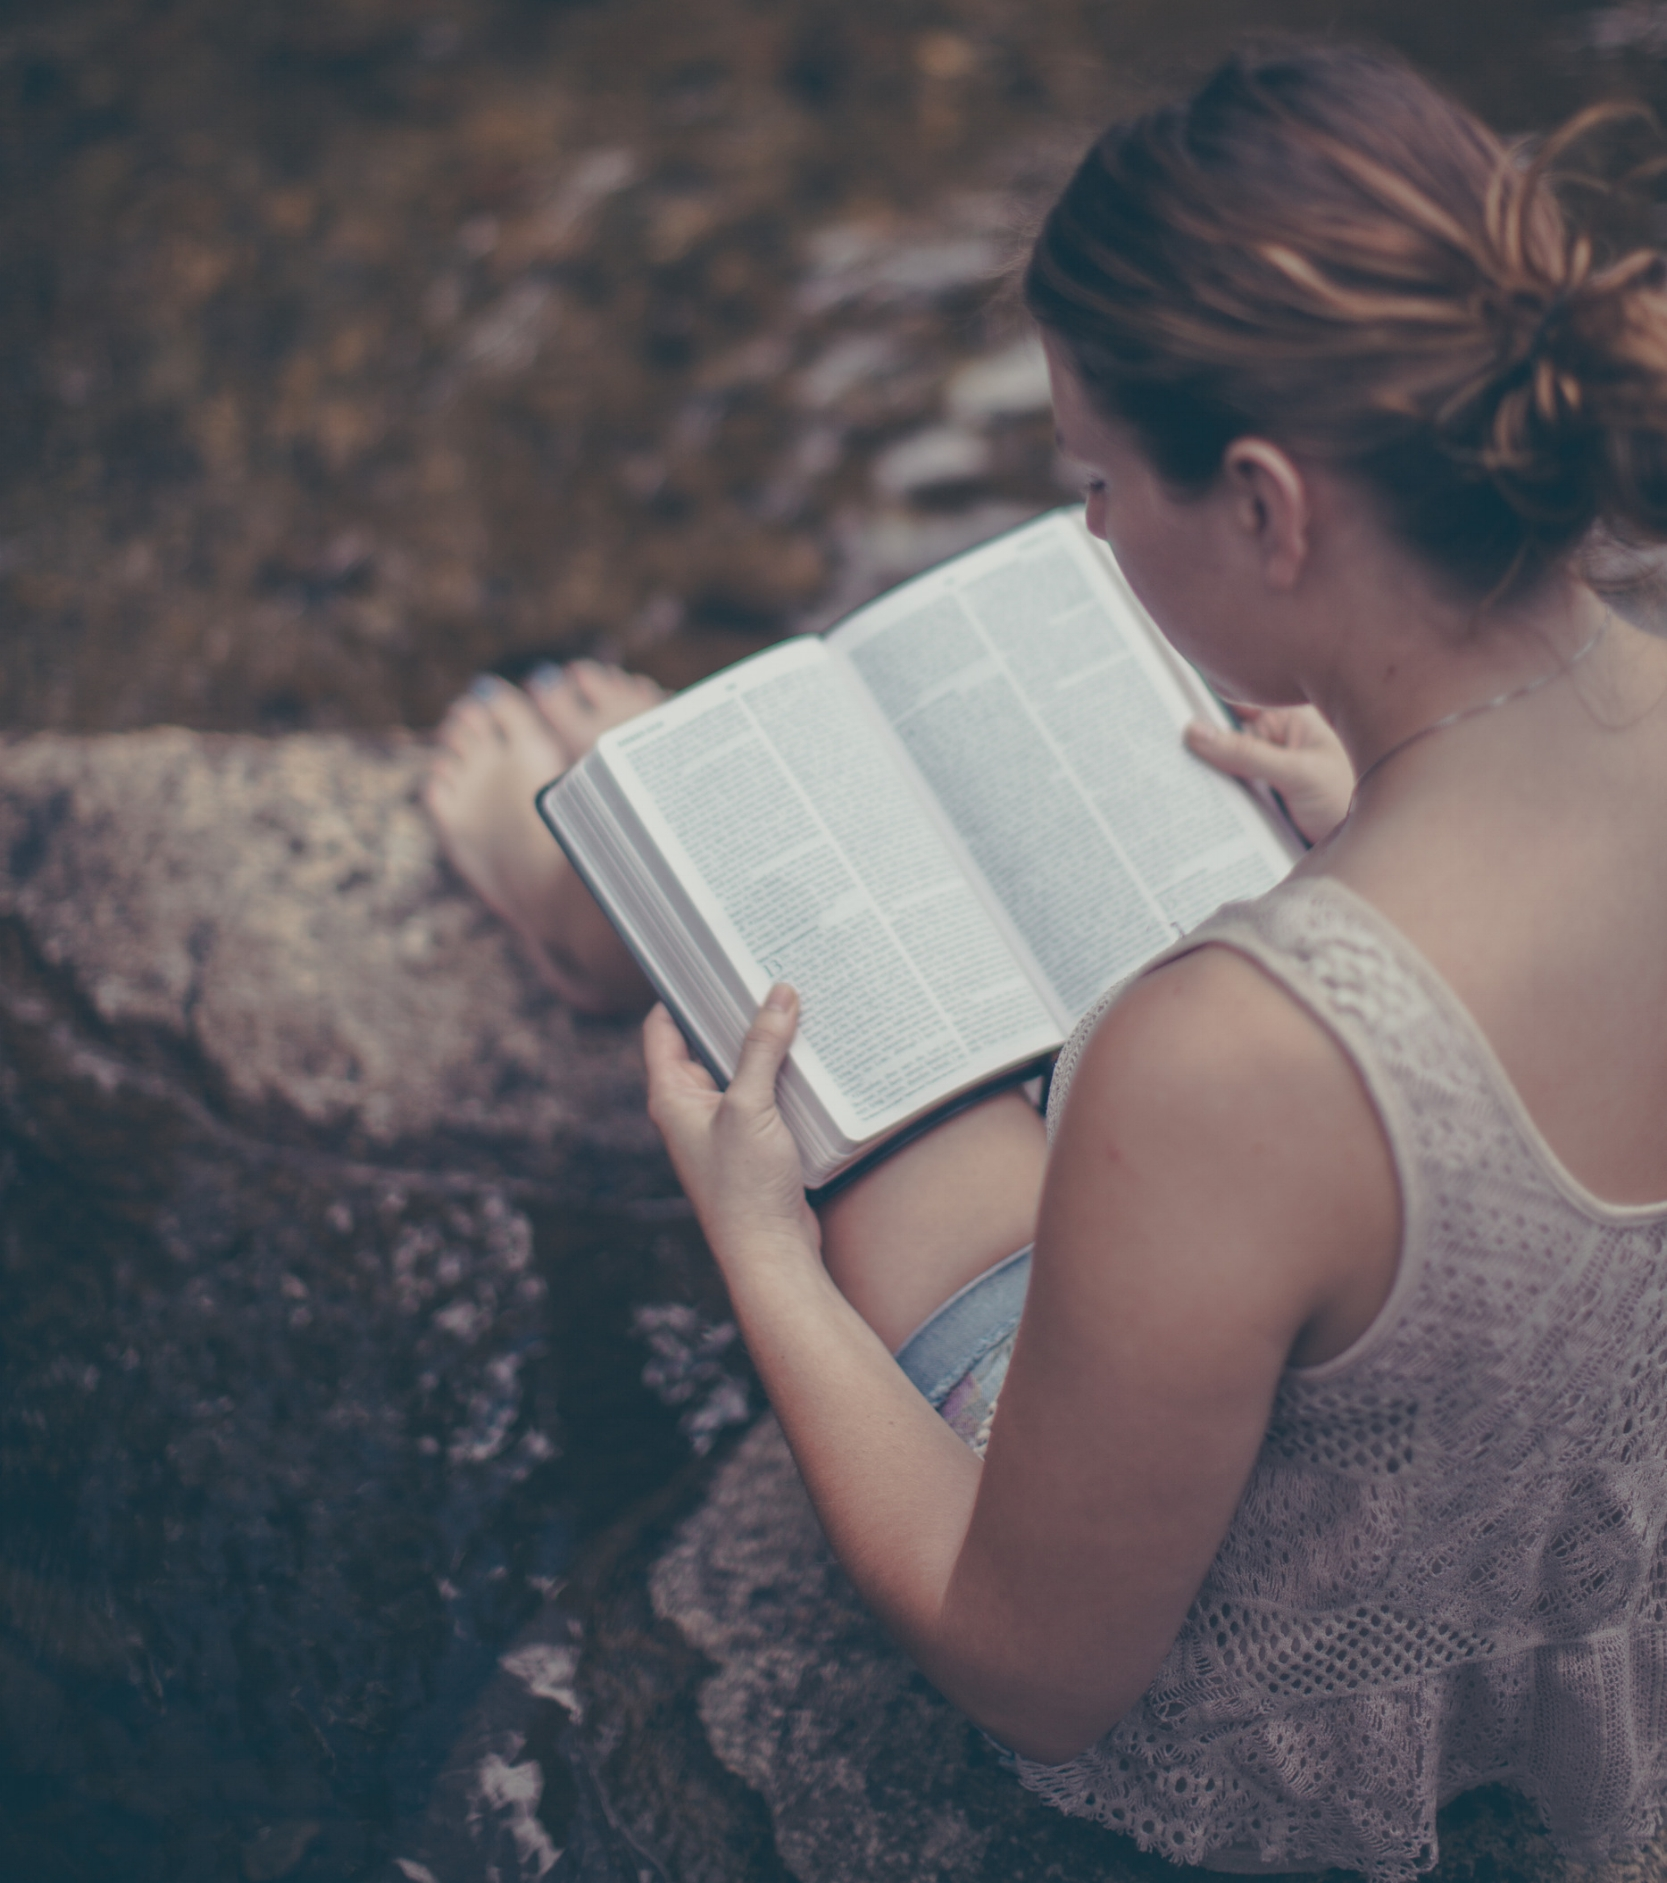 Woman Reading Bible.jpg